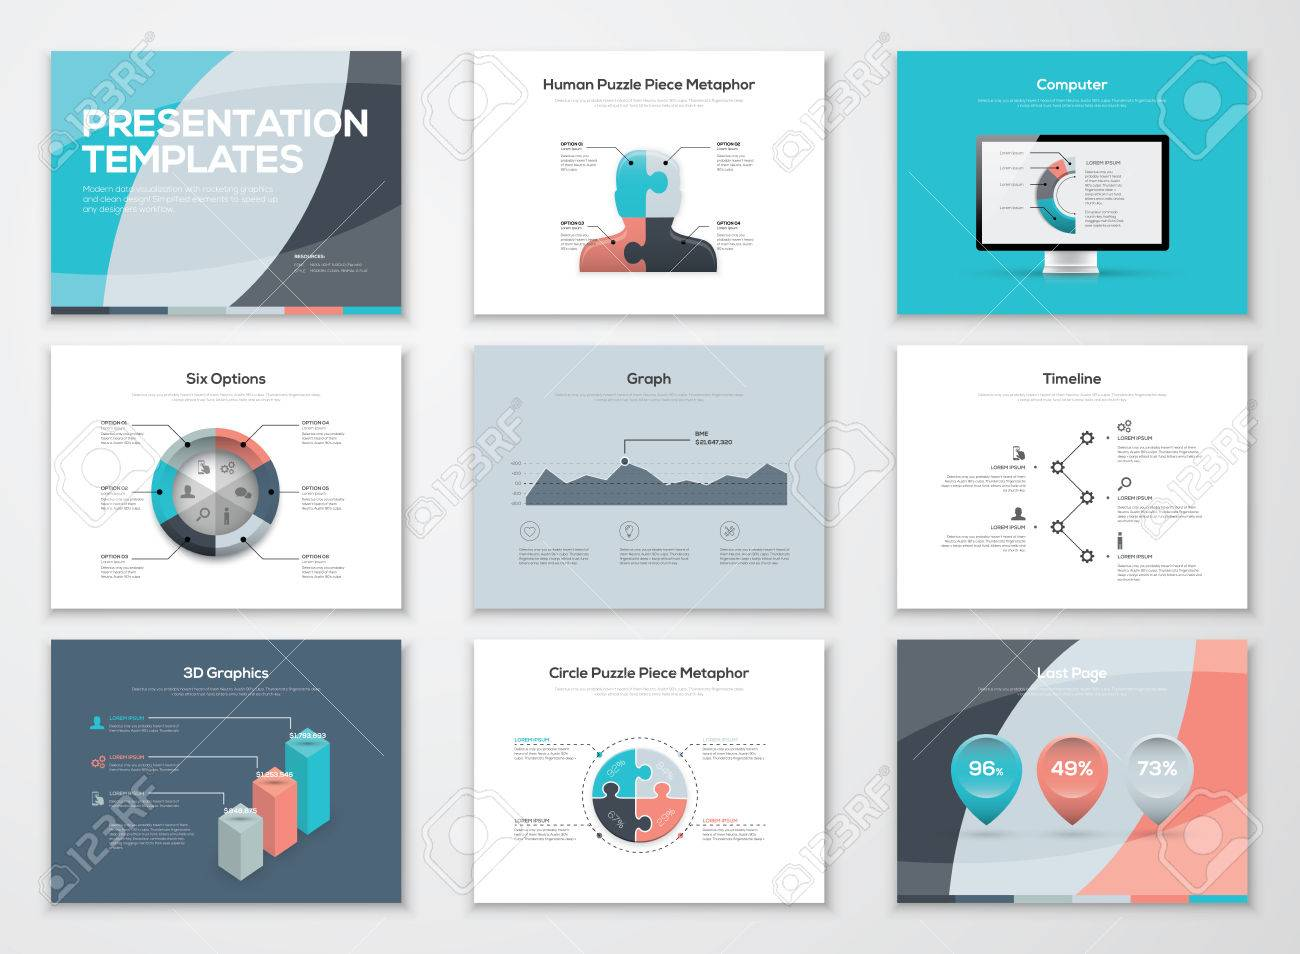 business presentation templates and infographic elements royalty